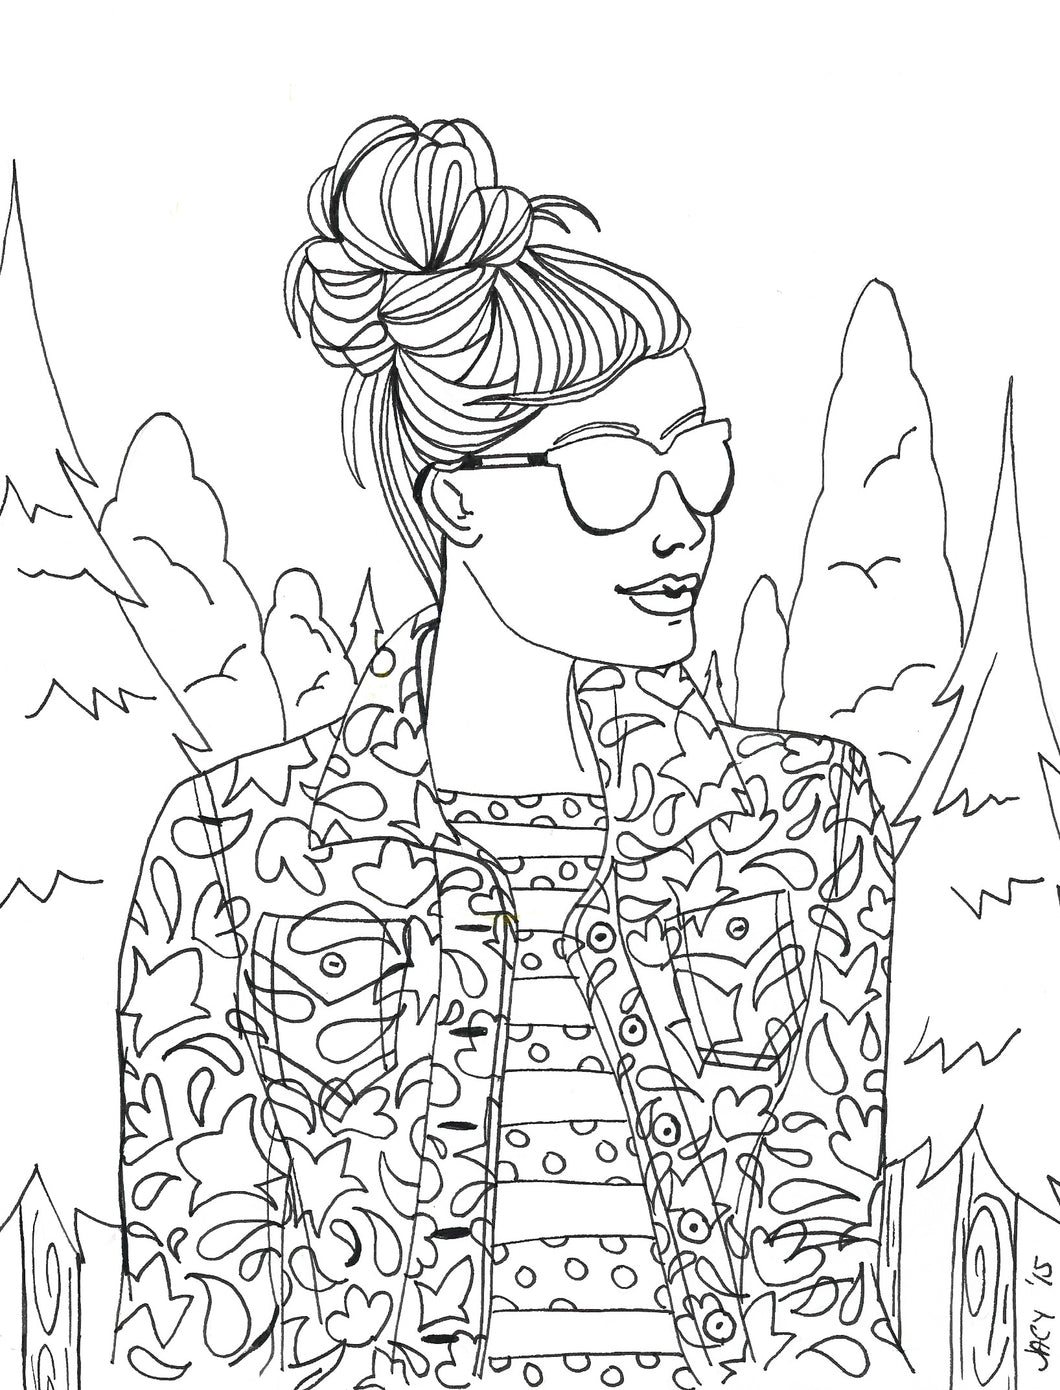 Wildfire Coloring Page